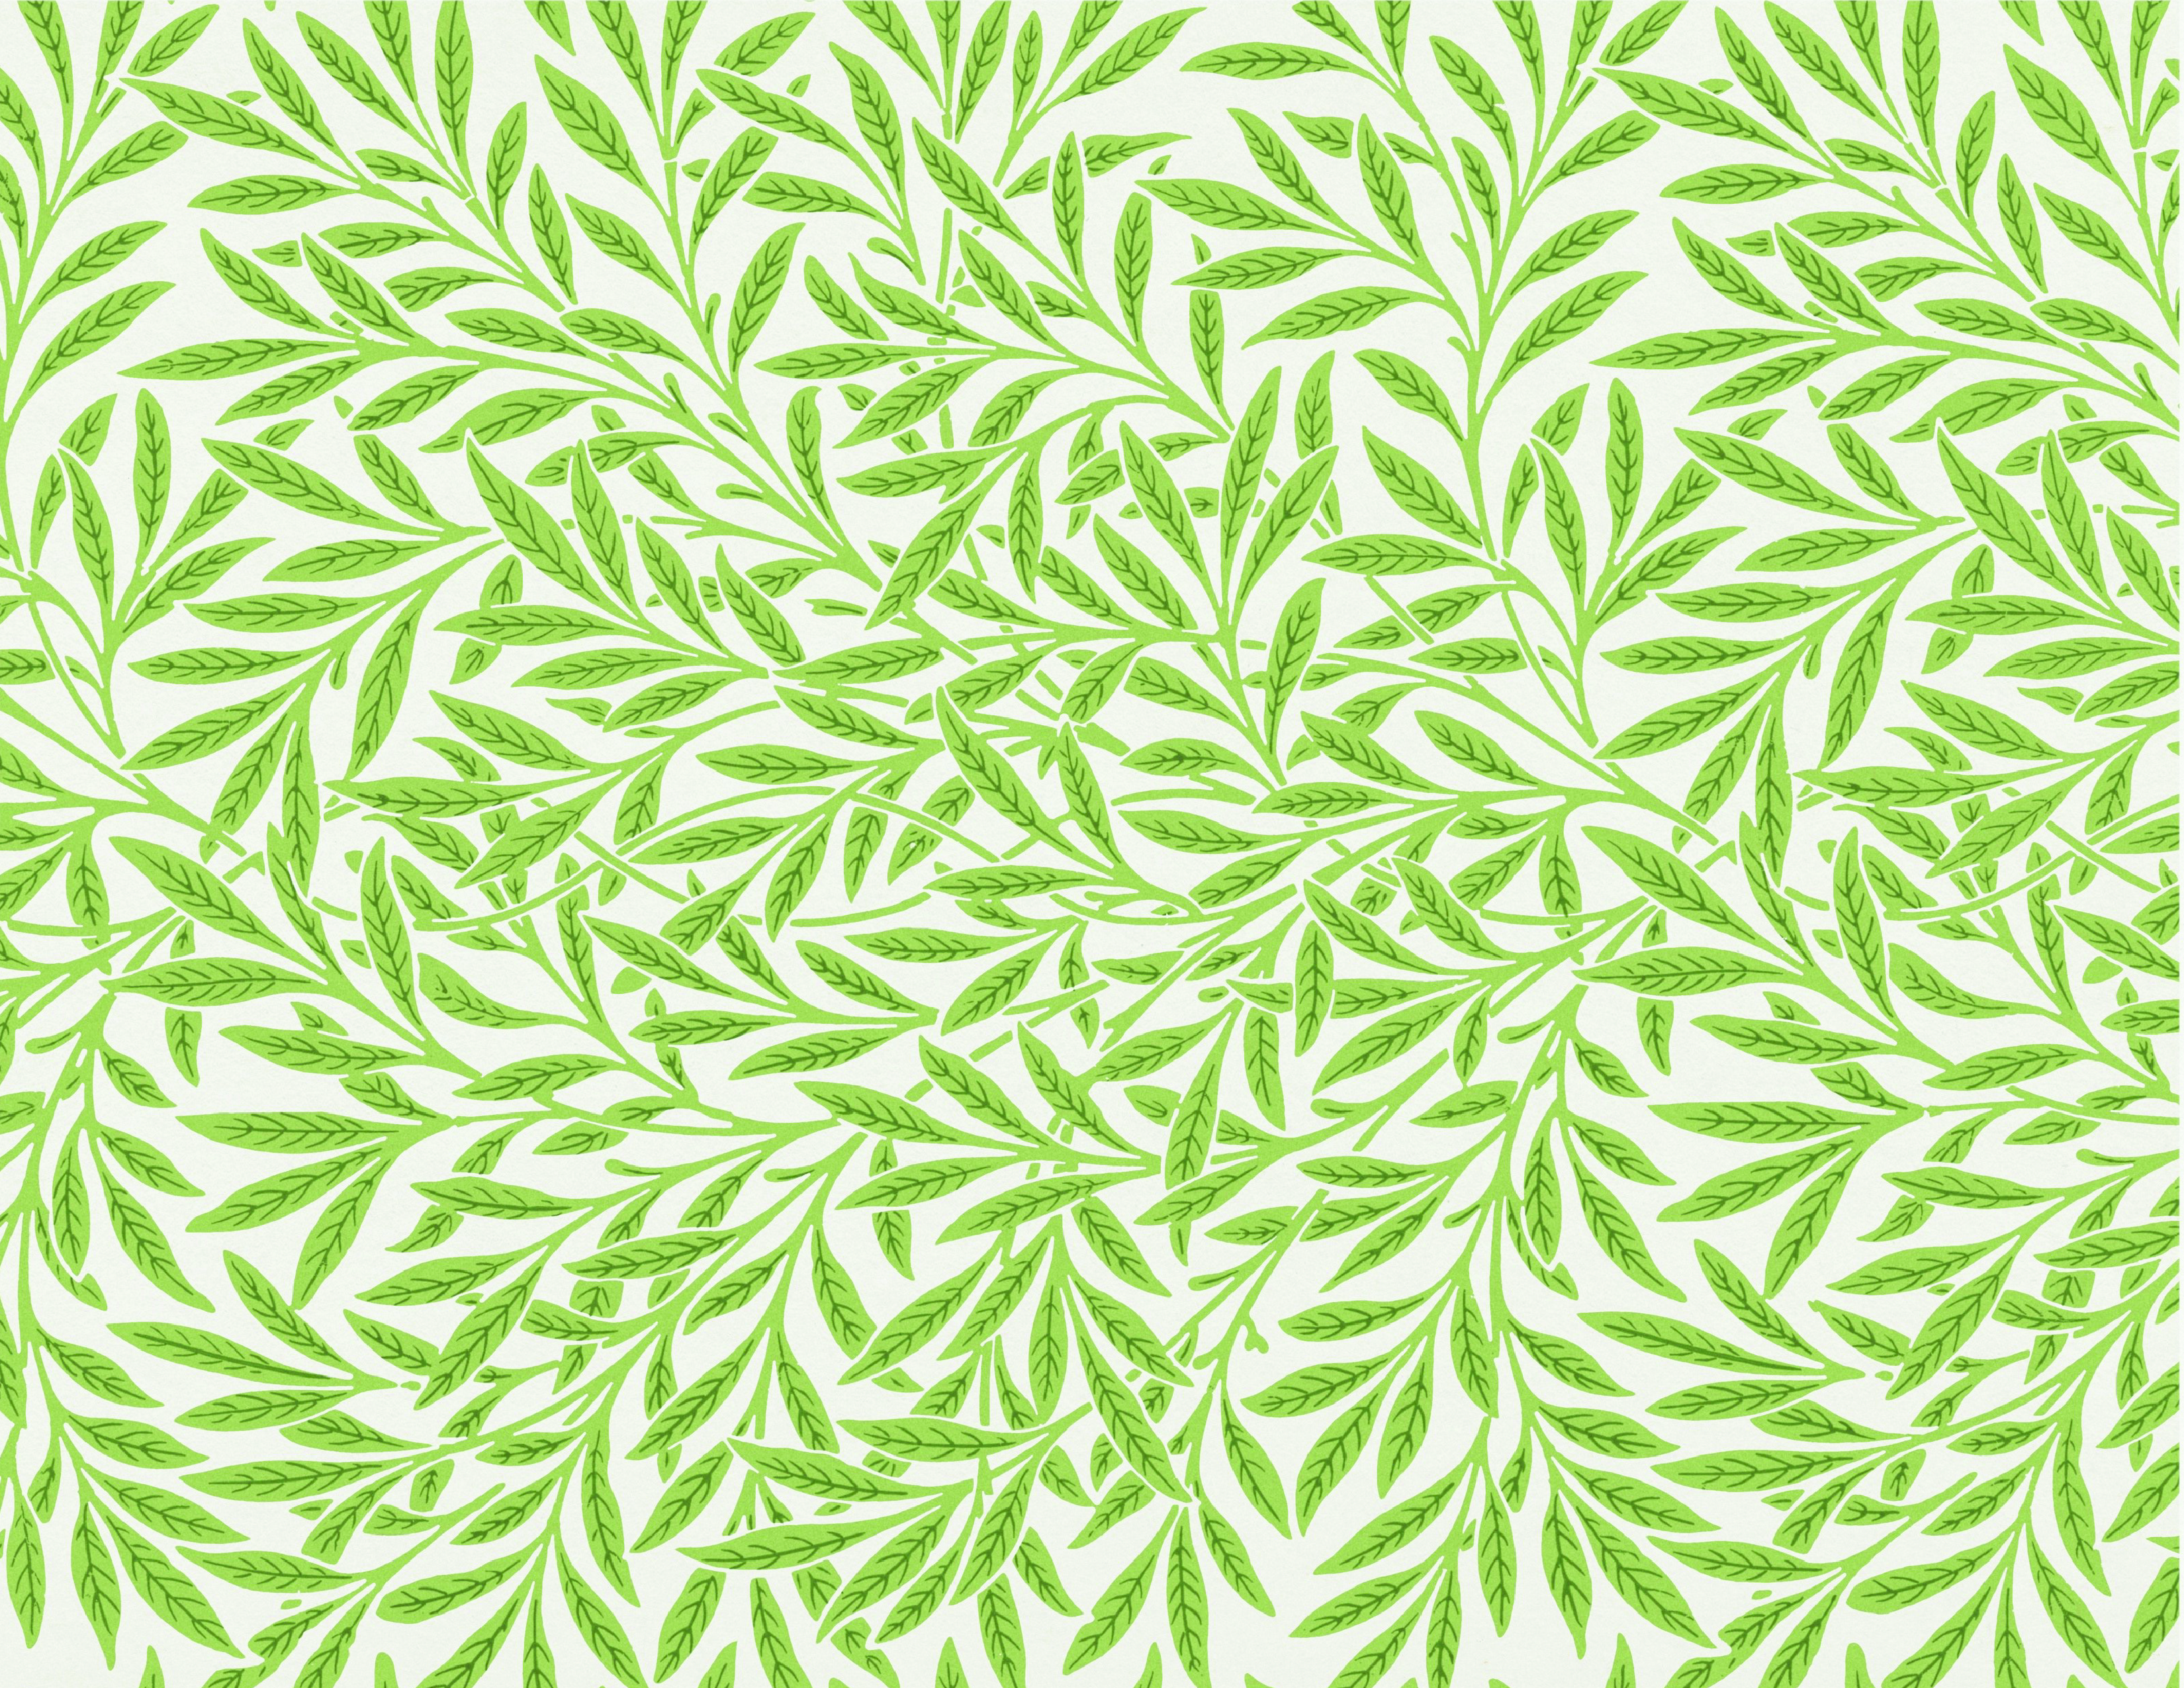 Willow Green Leaf Pattern 1850s Grand Vintage Vines Miniature Dollhouse Wallpaper Printable